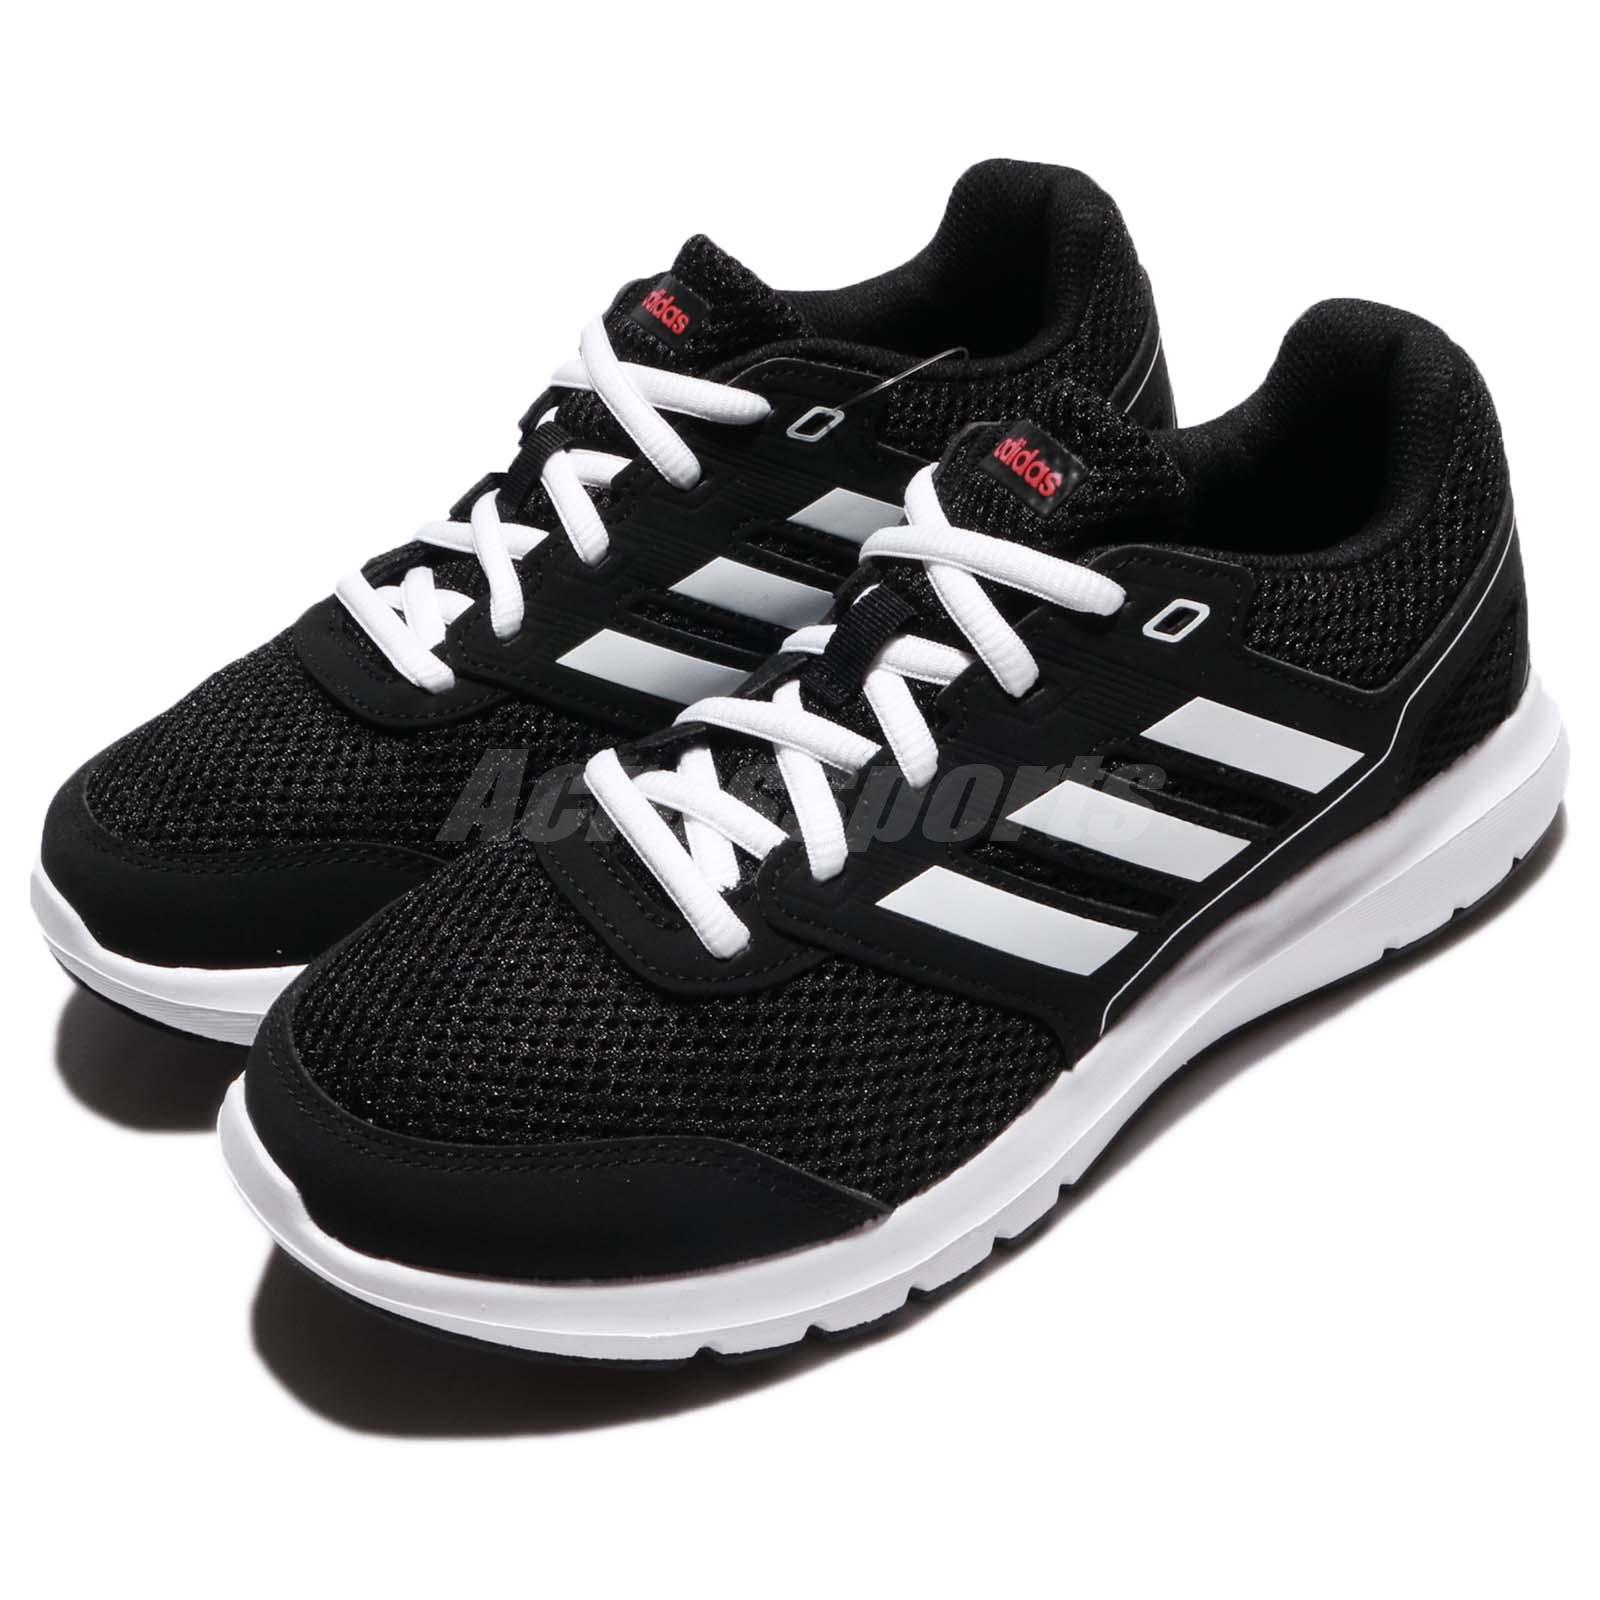 Details about adidas Duramo Lite 2.0 2 Black White Women Running Shoes  Sneakers Trainer CG4050